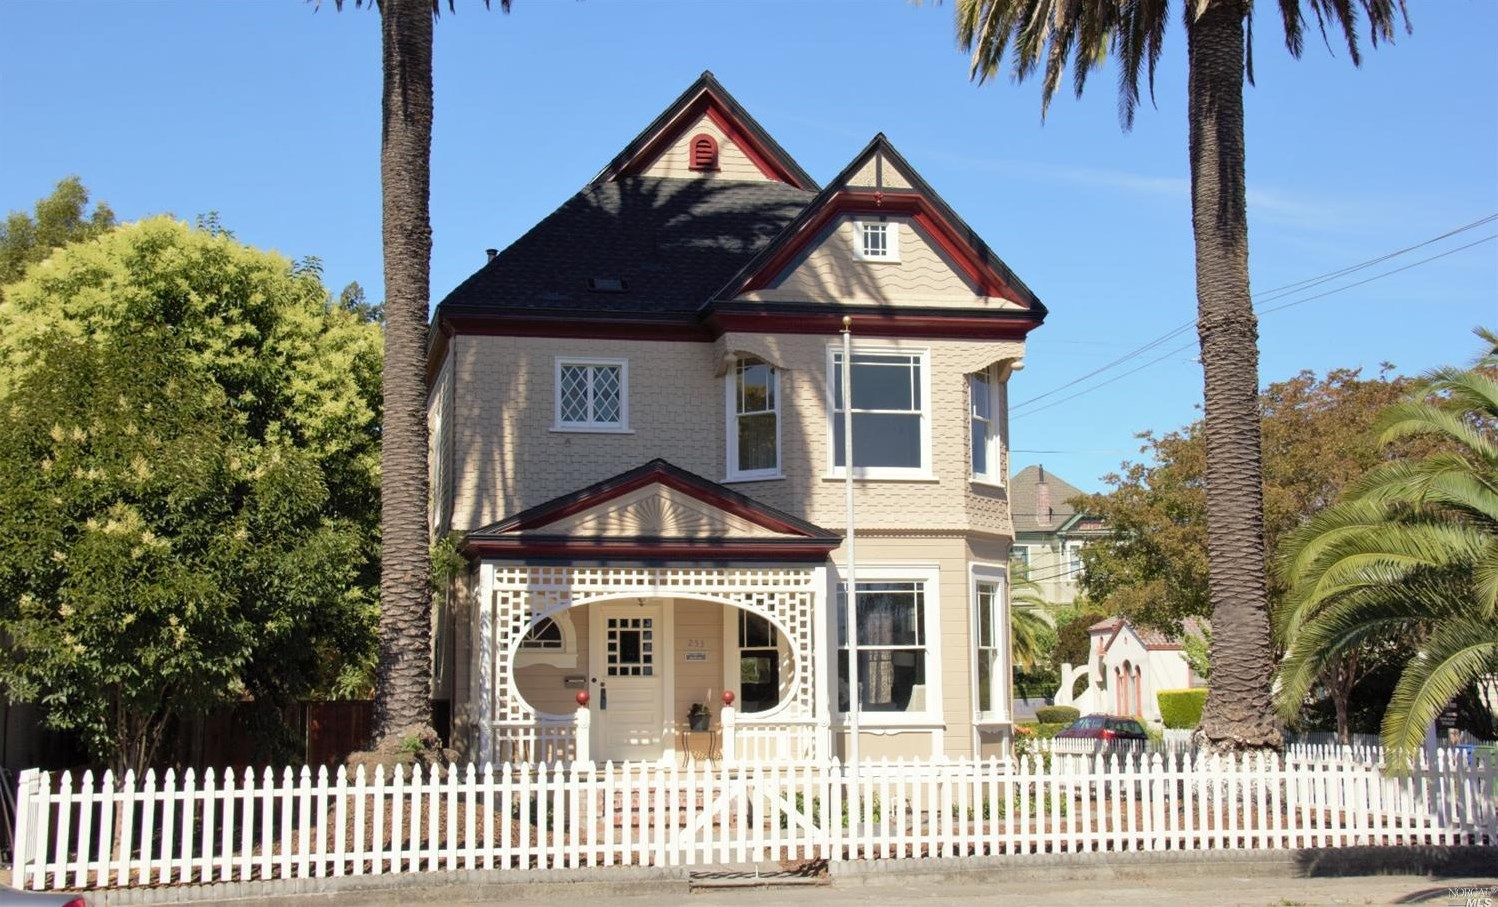 An 1895 Queen Anne Victorian Revival Is Listed At 12M In Petaluma